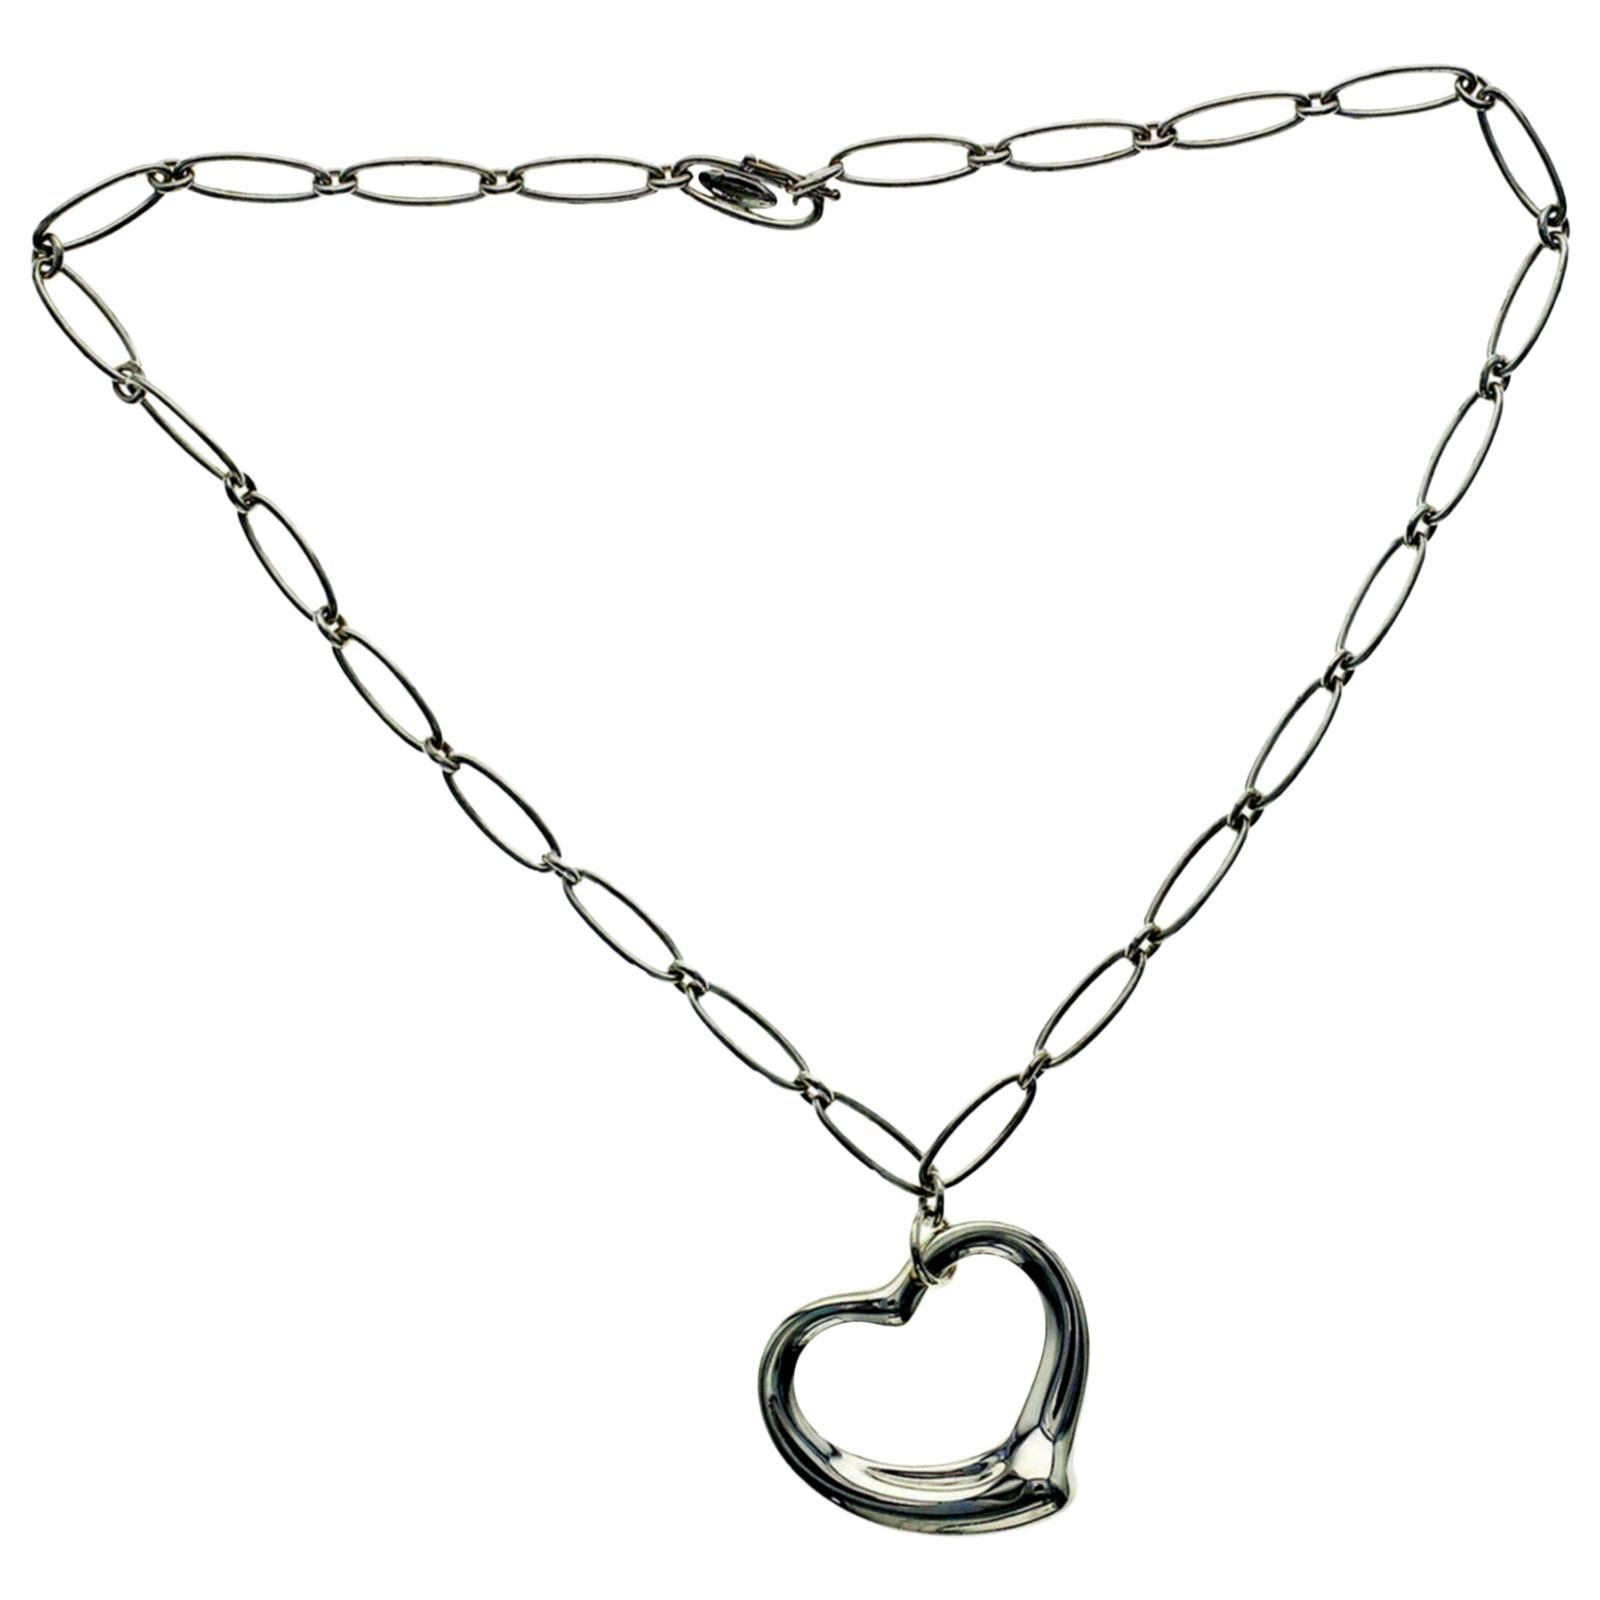 5674fbbb0 Tiffany and Co. Sterling Silver Heart Tag Toggle Necklace For Sale at  1stdibs